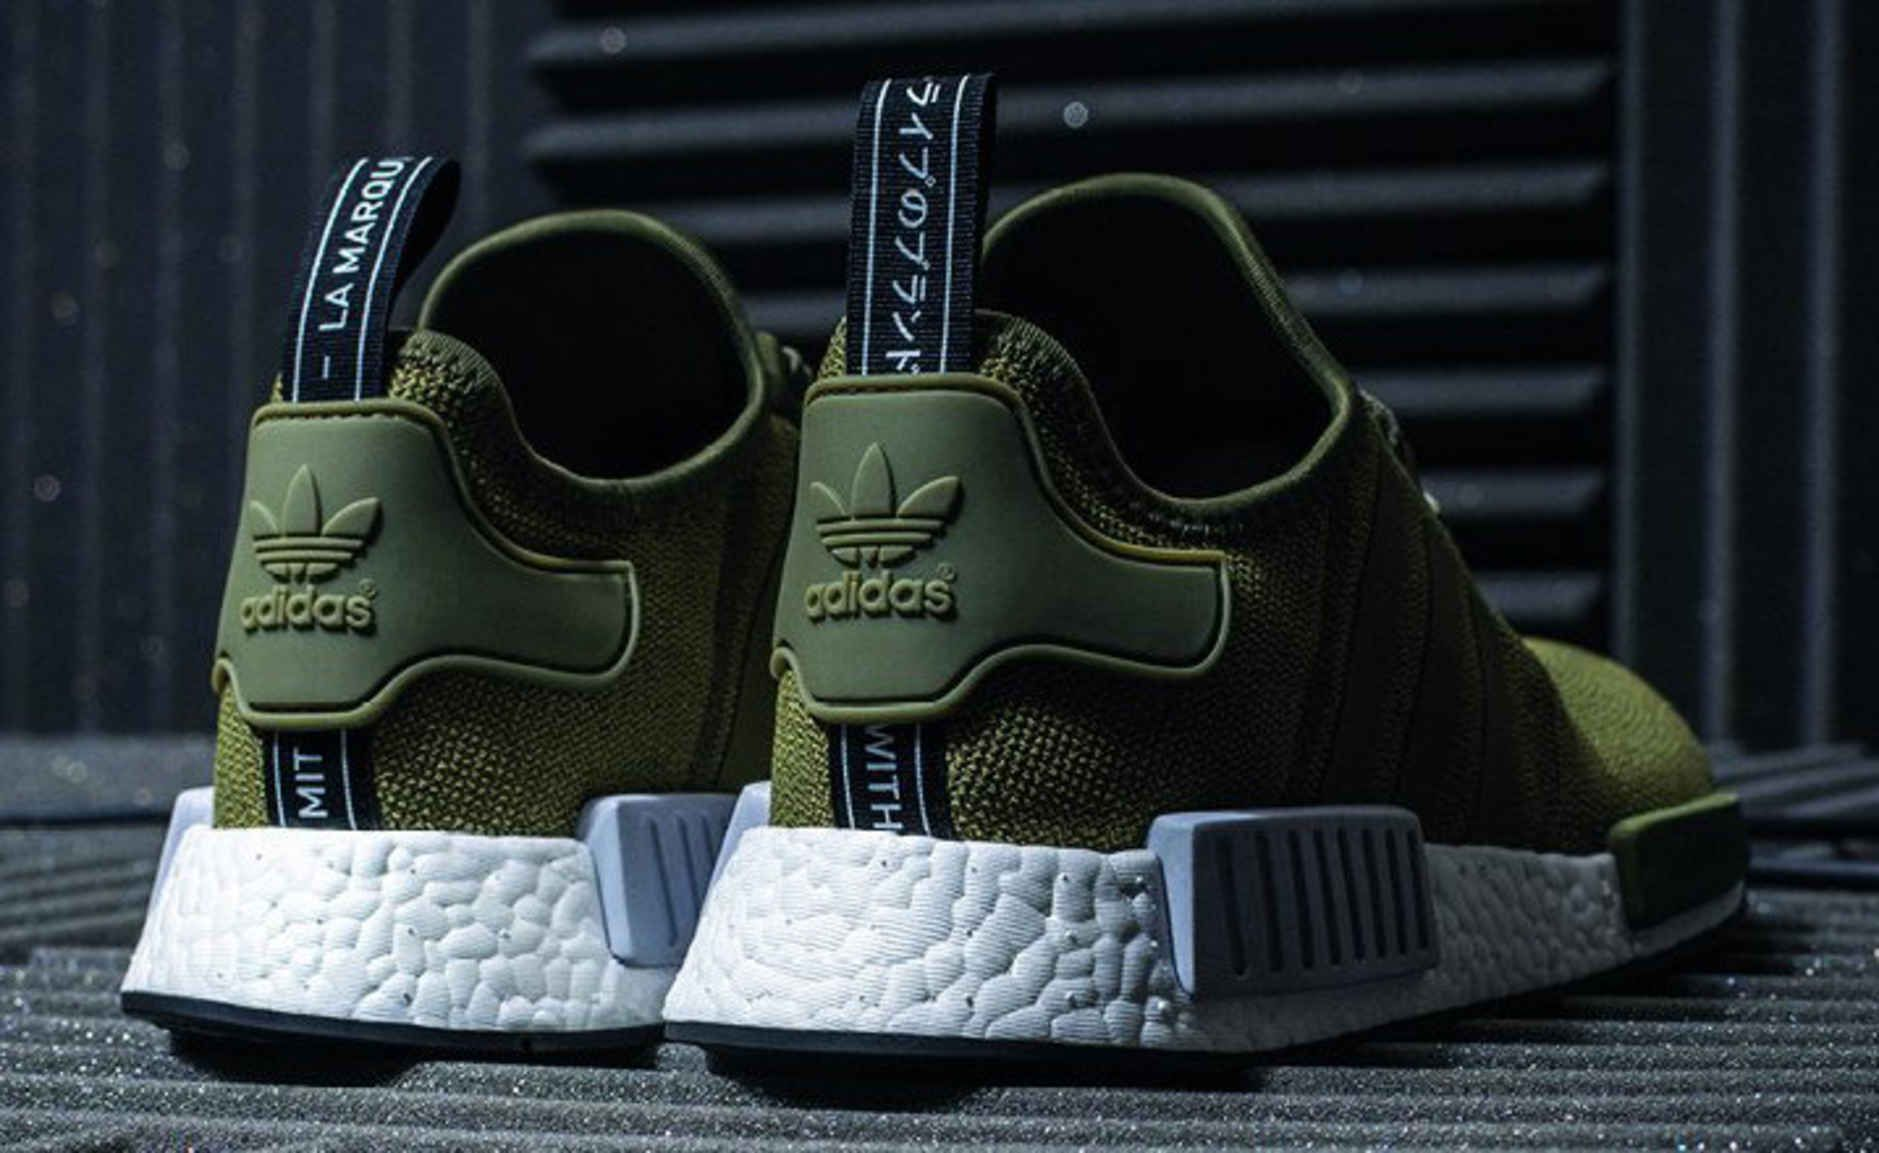 adidas NMD Olive Maroon Spring 2017 Release |